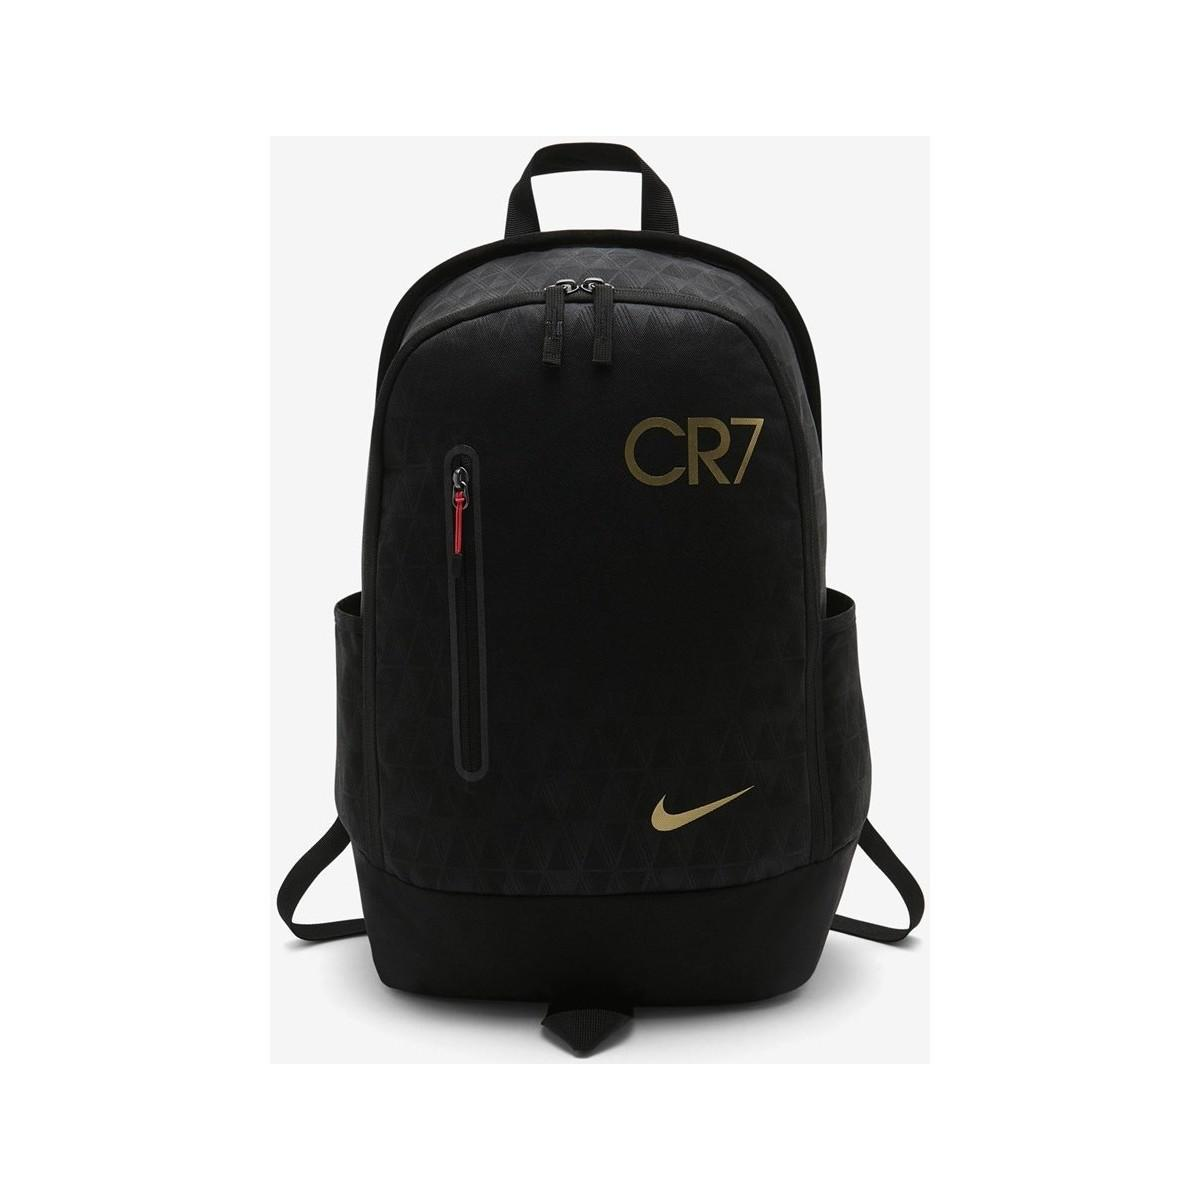 c2f03a824d Nike Y Cr7 Nk Fb Backpack Women s Backpack In Black in Black - Lyst